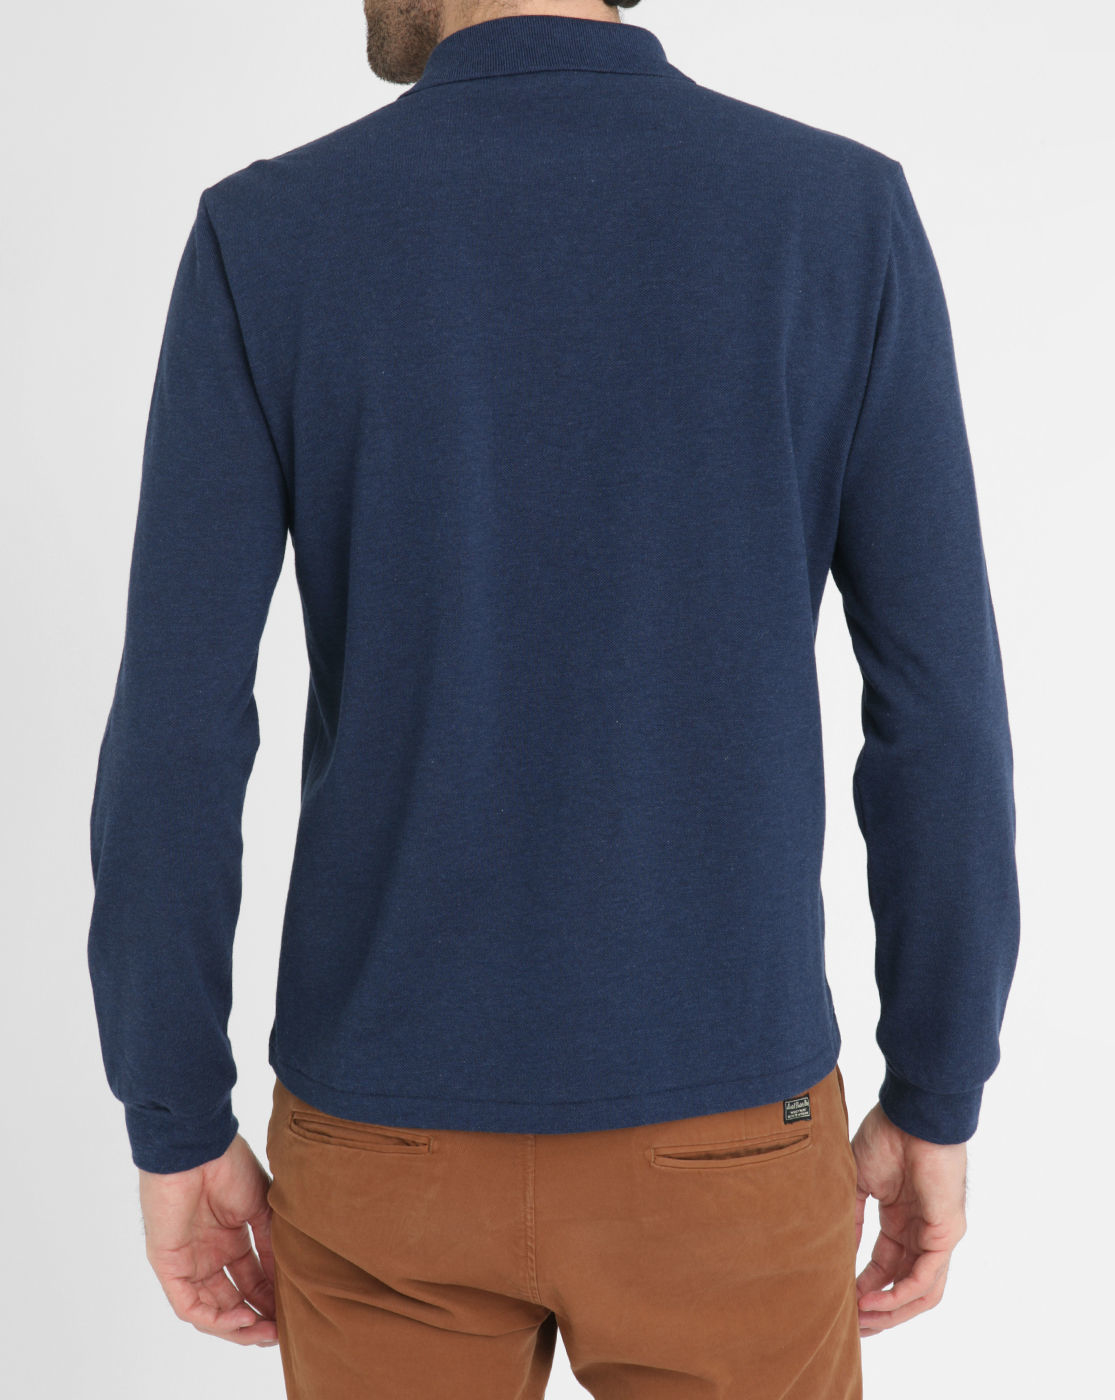 Lacoste Mottled Navy Long Sleeve Polo Shirt In Blue For